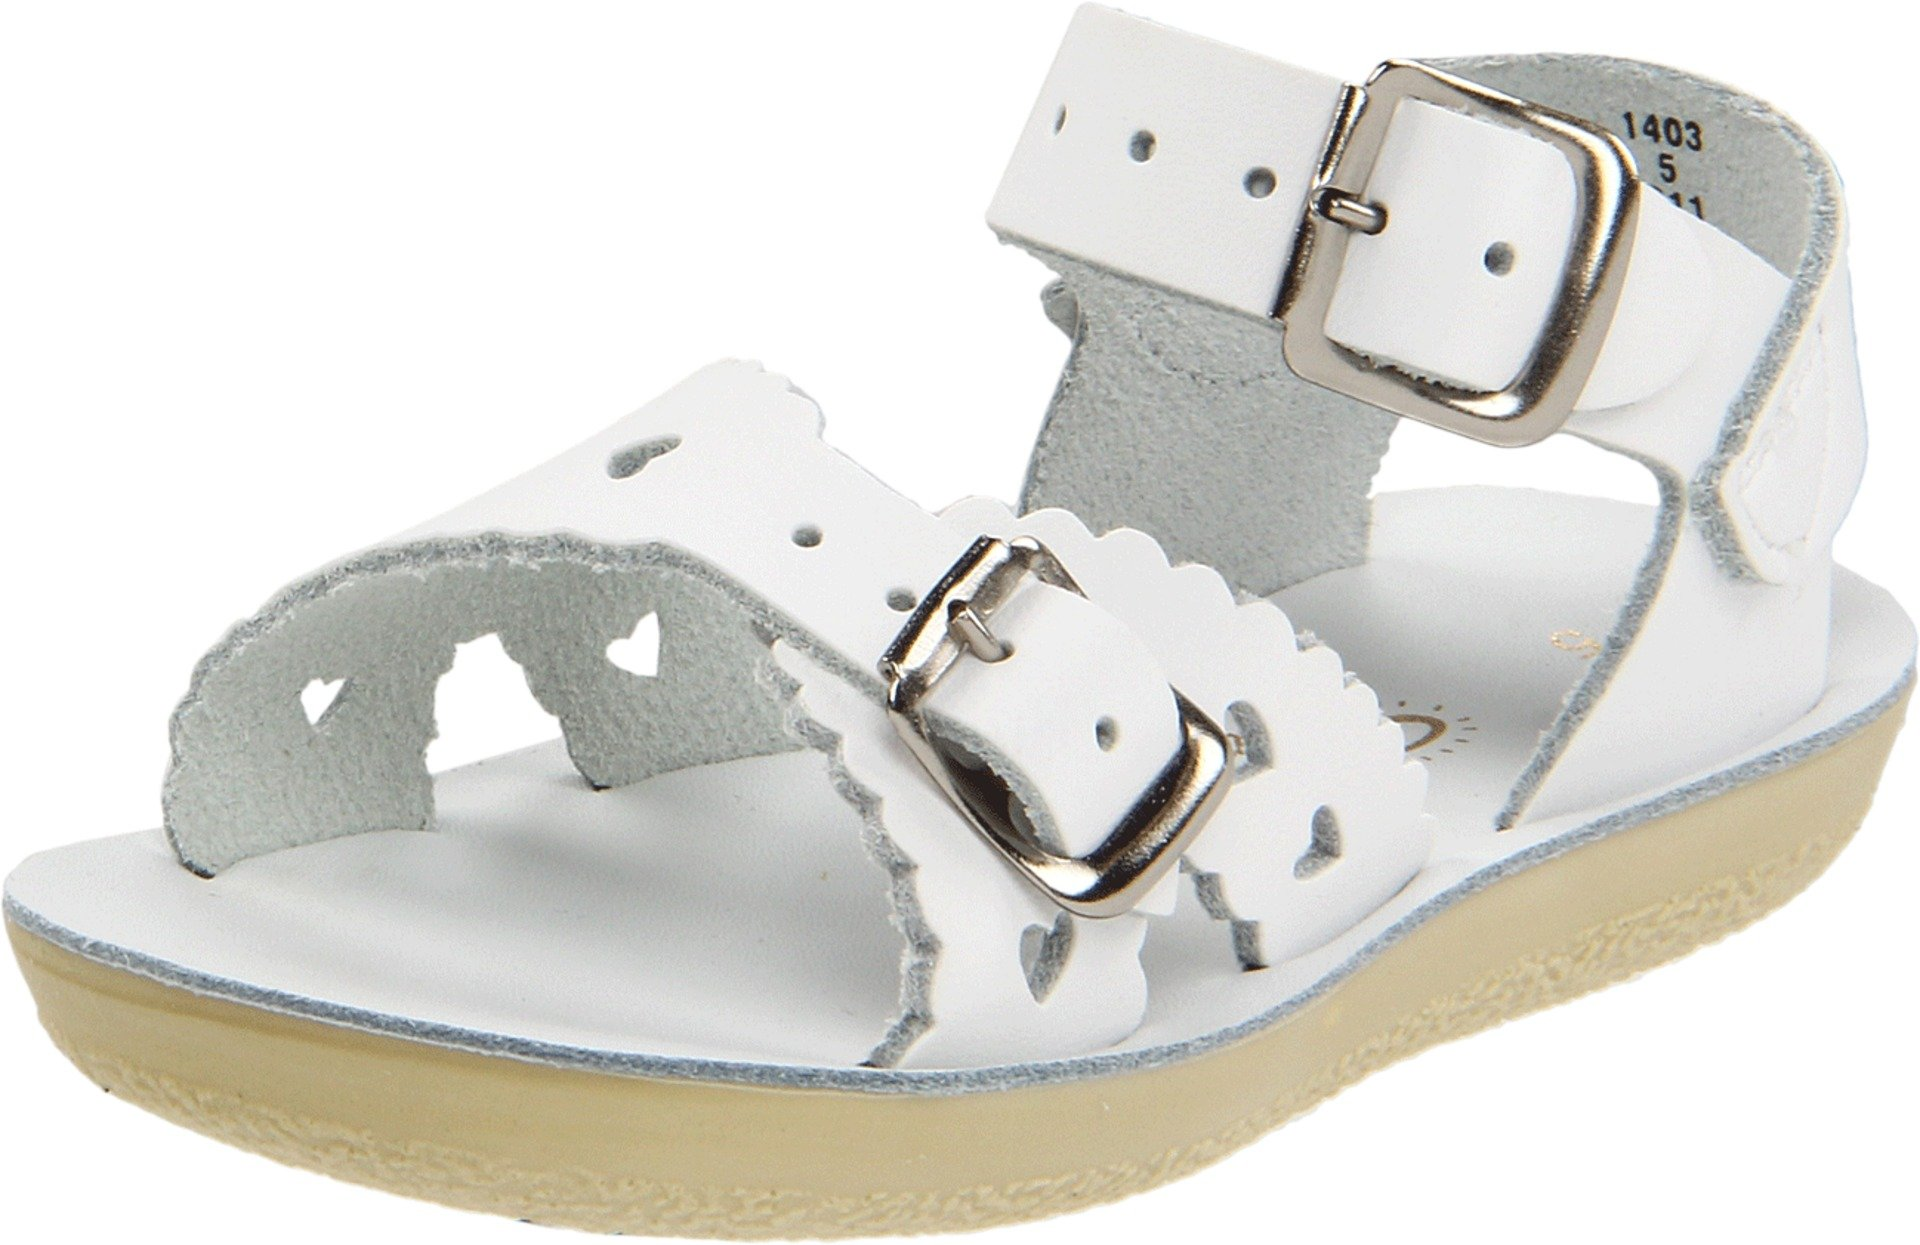 Salt Water Sandals by Hoy Shoe Sweetheart,White,9 M US Toddler